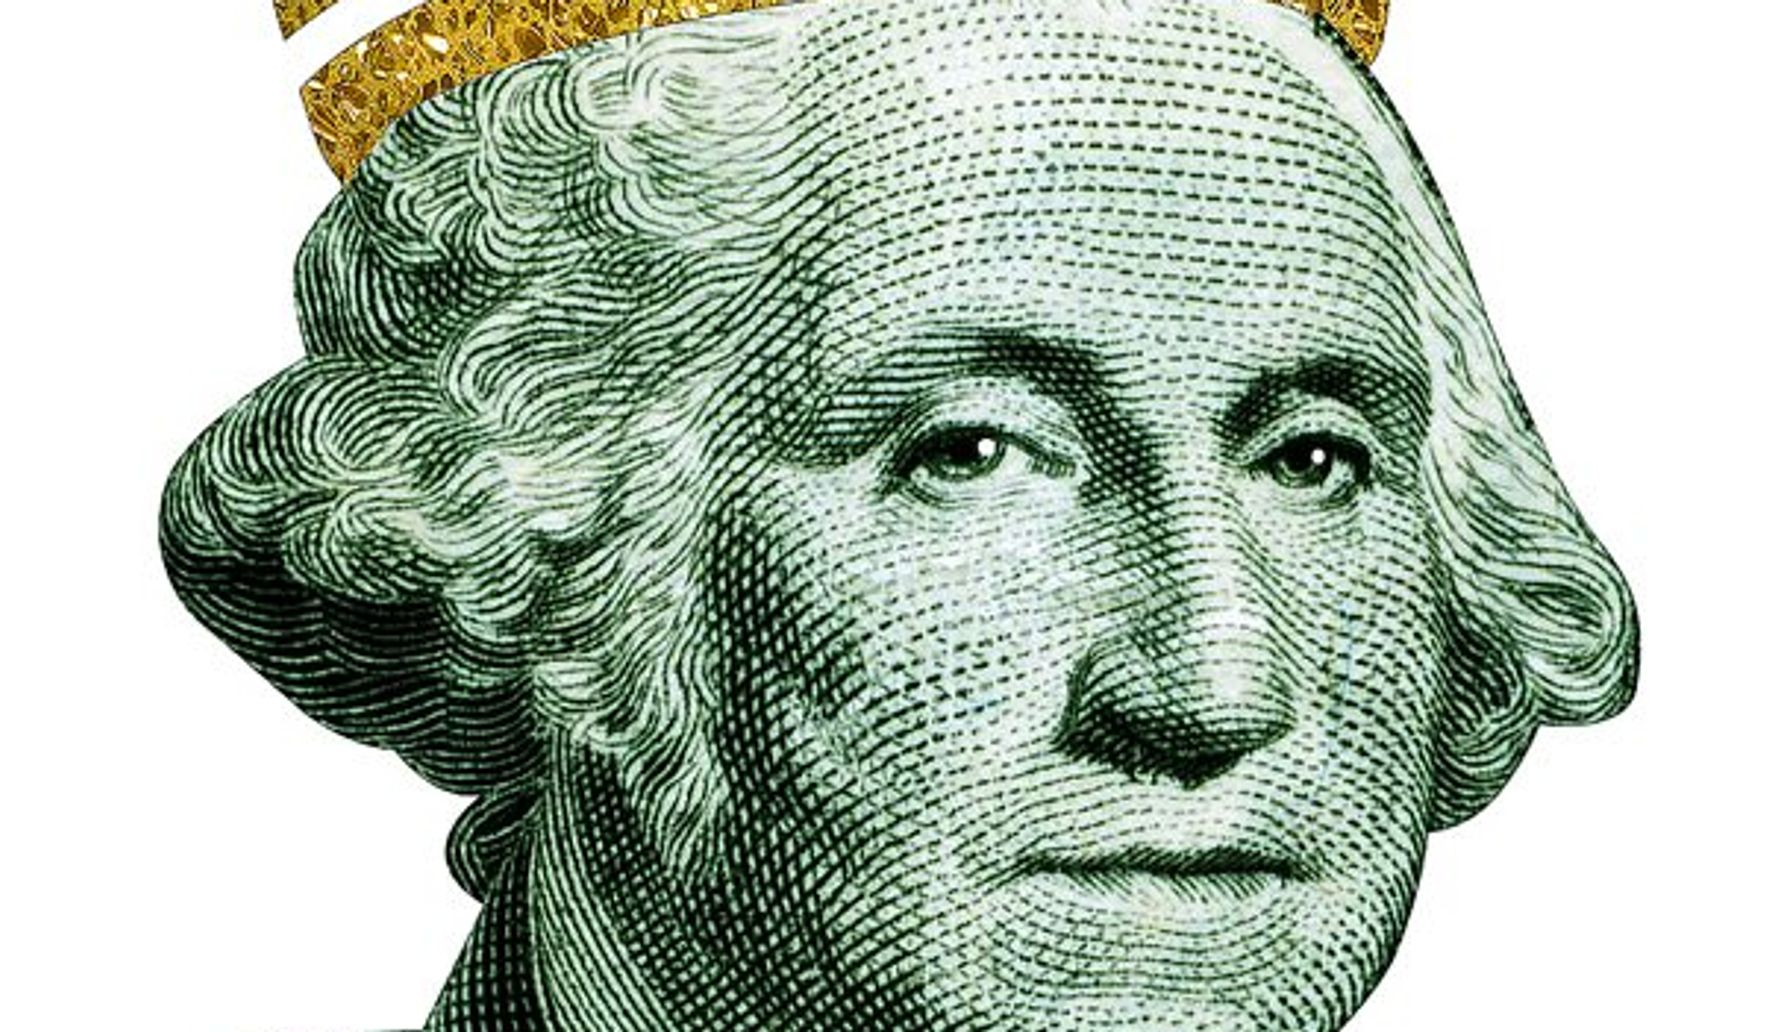 U.S. dollar could be dethroned by digital currency